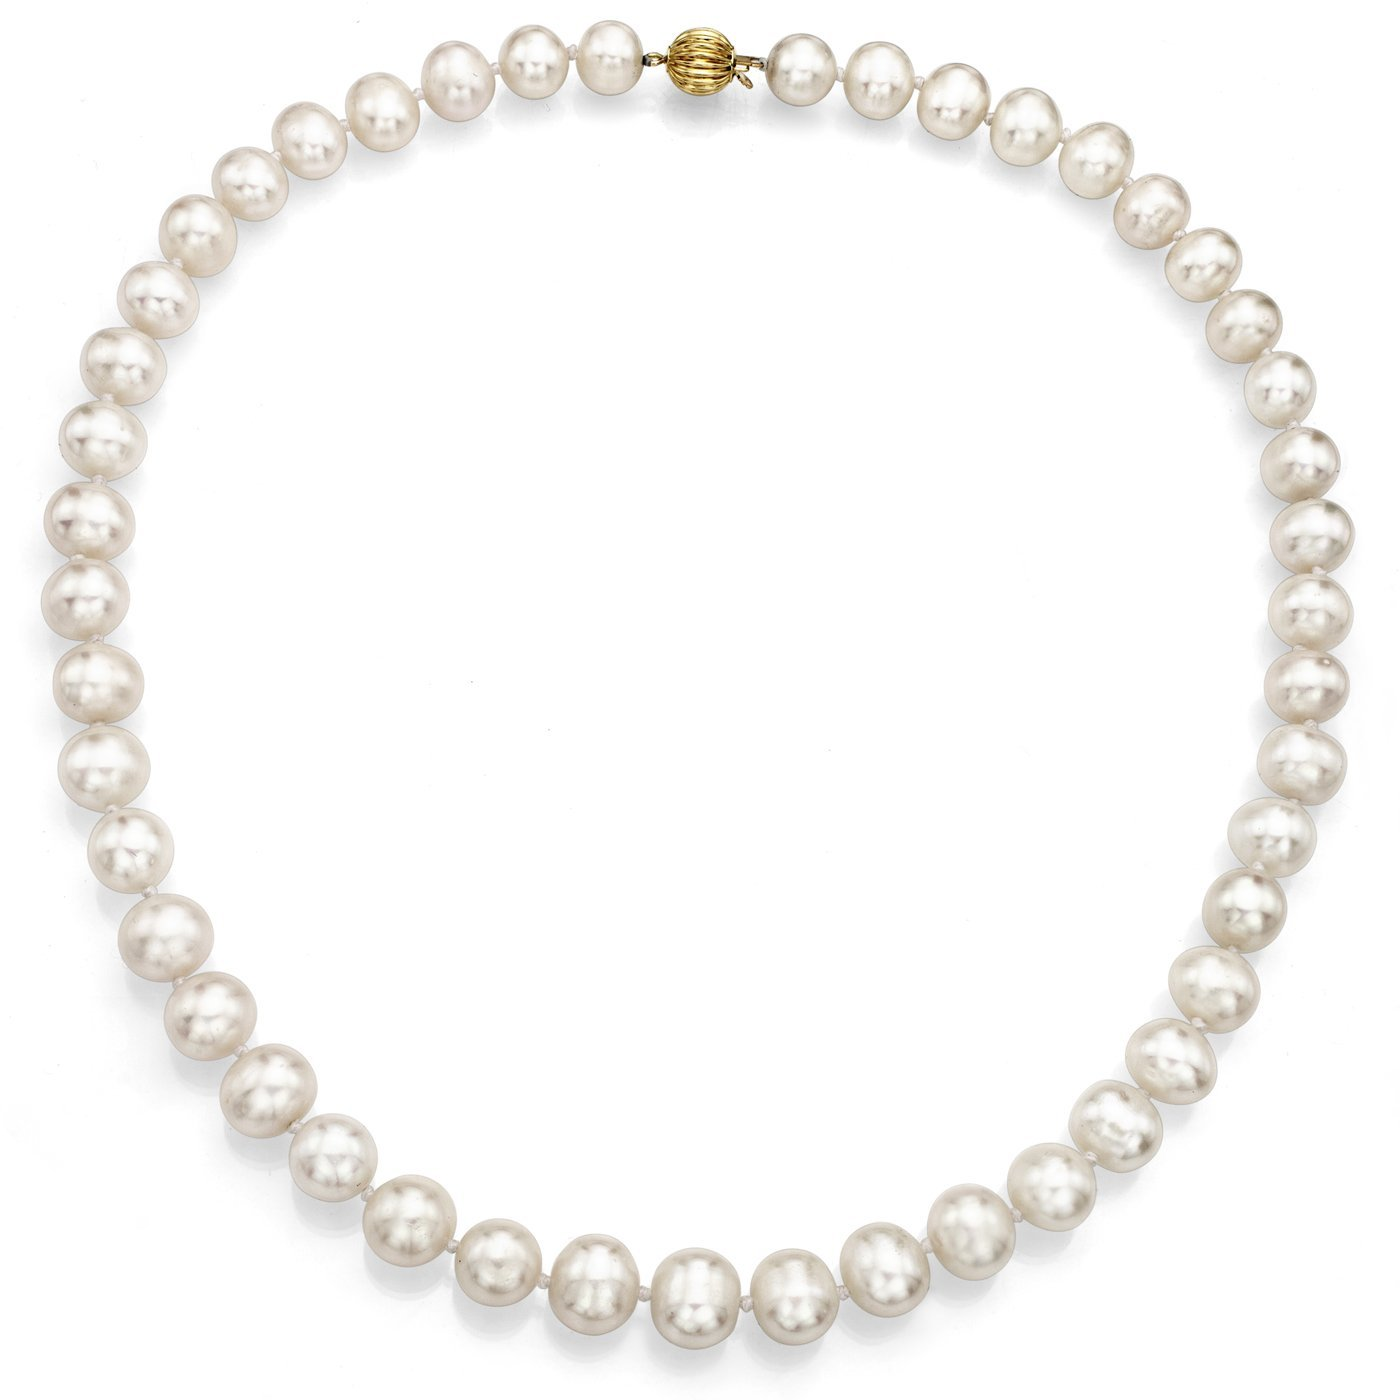 14k Yellow Gold 8.5-9.5mm White Freshwater Cultured Pearl Ball-clasp Necklace, 18'' Jewelry Gift For Women